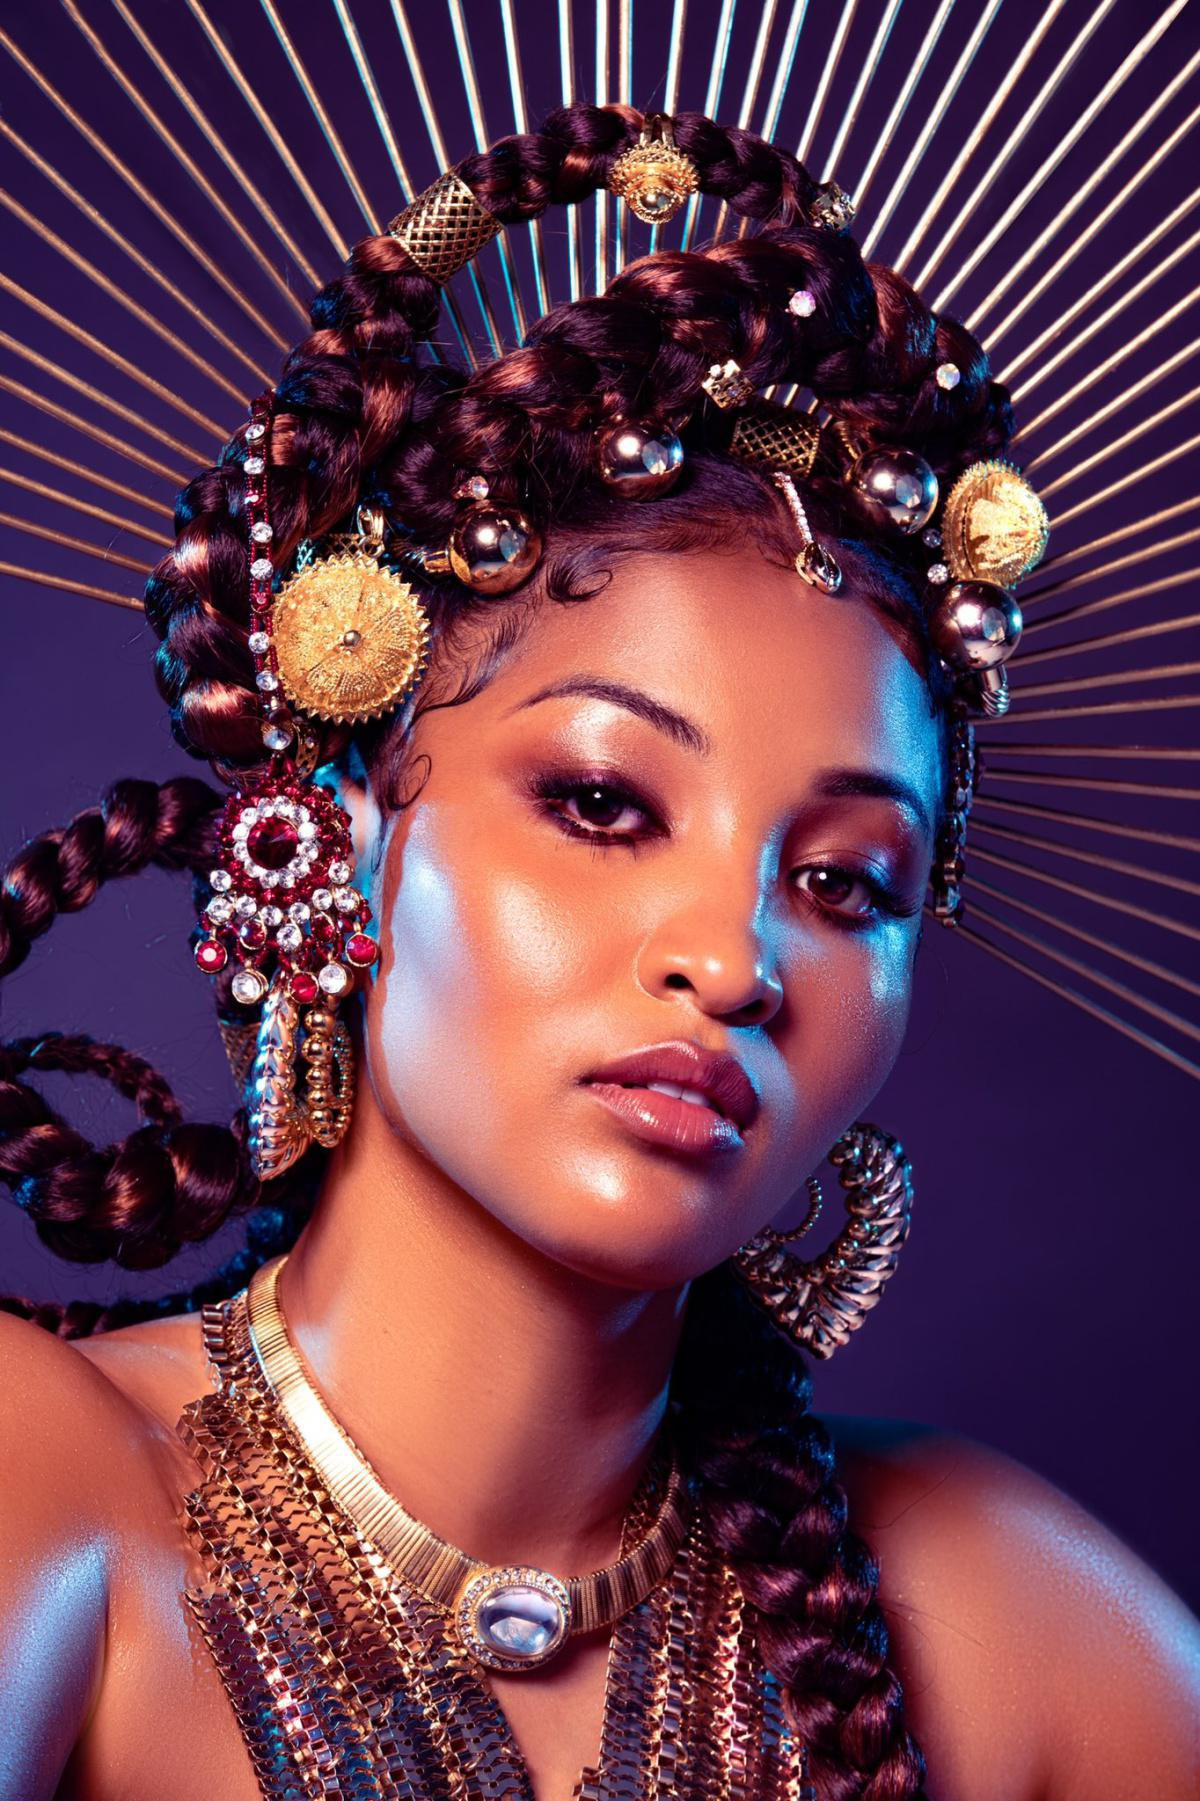 Shenseea; the only female rapper featured on DONDA